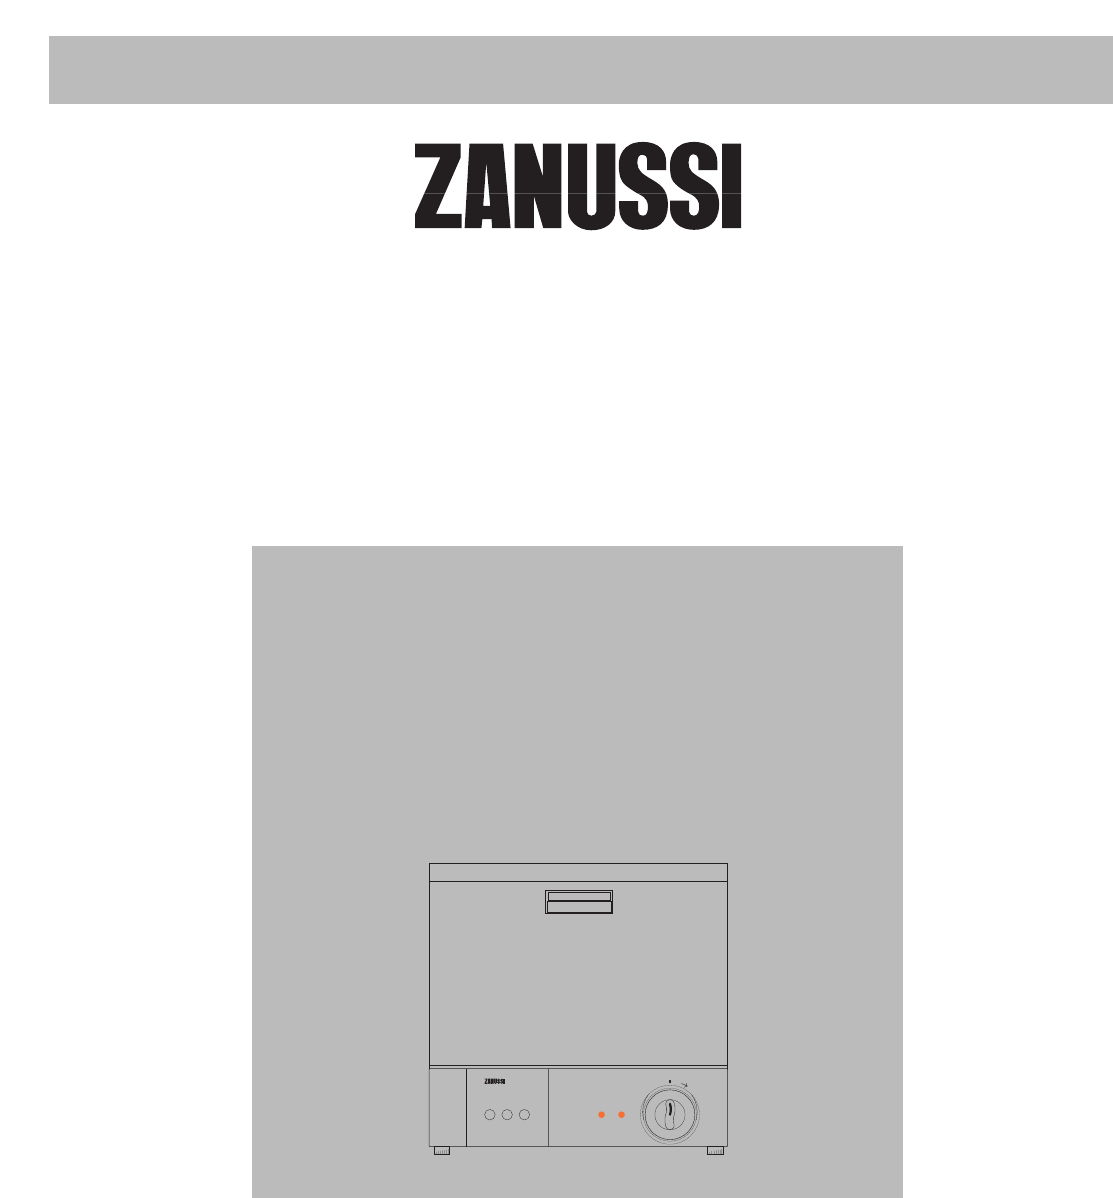 zanussi dishwasher dcs 14 w user guide manualsonline com rh kitchen manualsonline com zanussi dishwasher zdt12011fa user manual zanussi tempoline dishwasher user manual